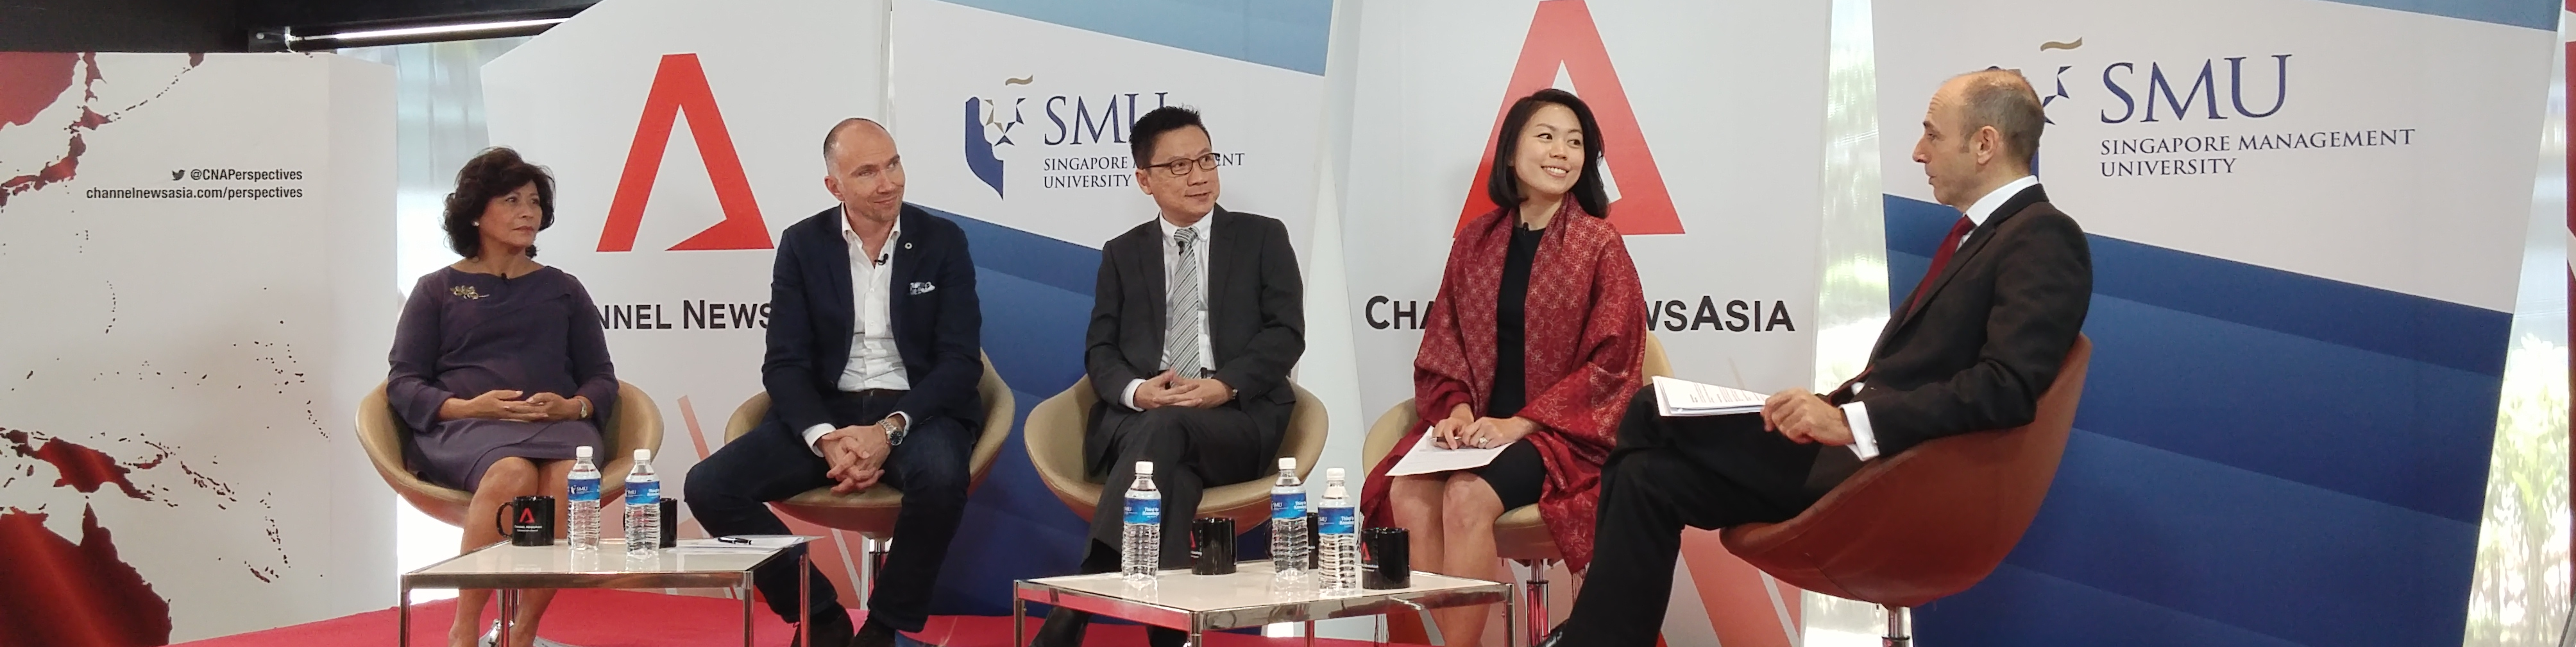 Belinda Tanoto - Channel NewsAsia Perspectives panel on Inequality in Asia